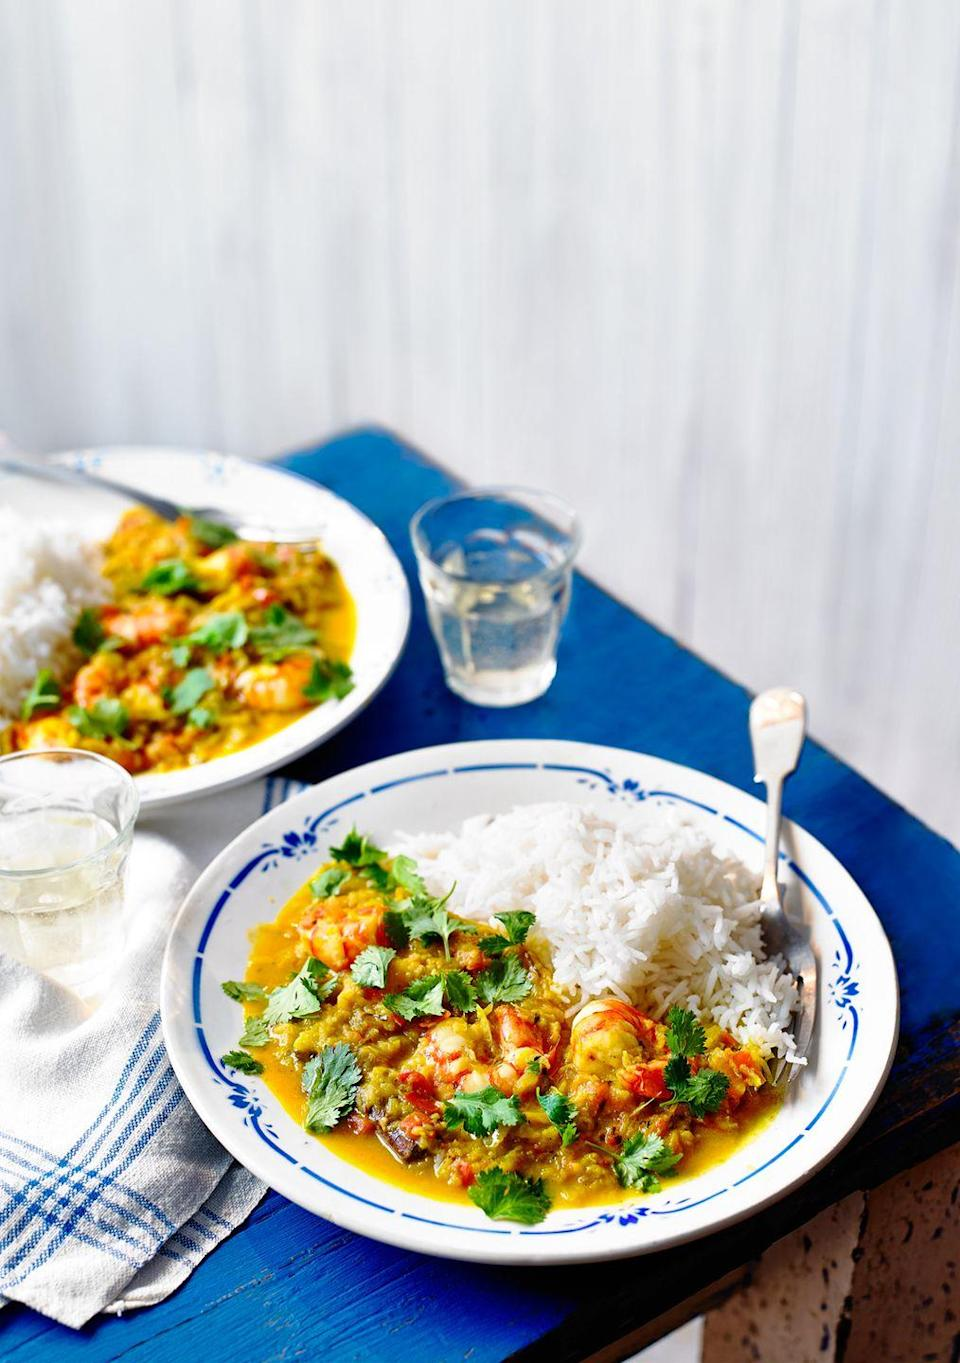 """<p><strong>Recipe: <a href=""""https://www.goodhousekeeping.com/uk/food/recipes/a29103793/prawn-coconut-curry/"""" rel=""""nofollow noopener"""" target=""""_blank"""" data-ylk=""""slk:Keralan-Style Prawn and Coconut Curry"""" class=""""link rapid-noclick-resp"""">Keralan-Style Prawn and Coconut Curry</a></strong></p>"""